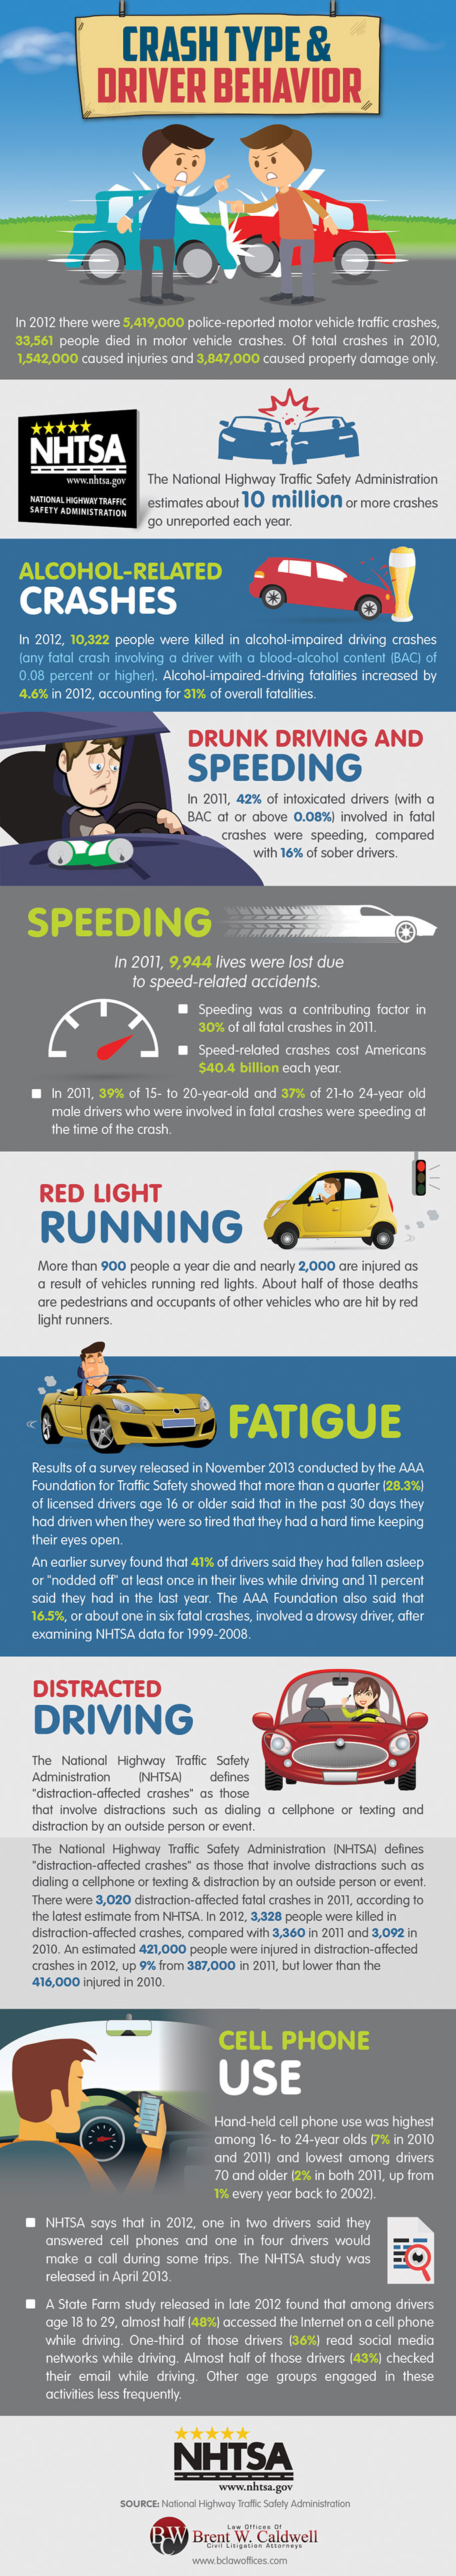 Crash Type & Driver Behavior – Infographic